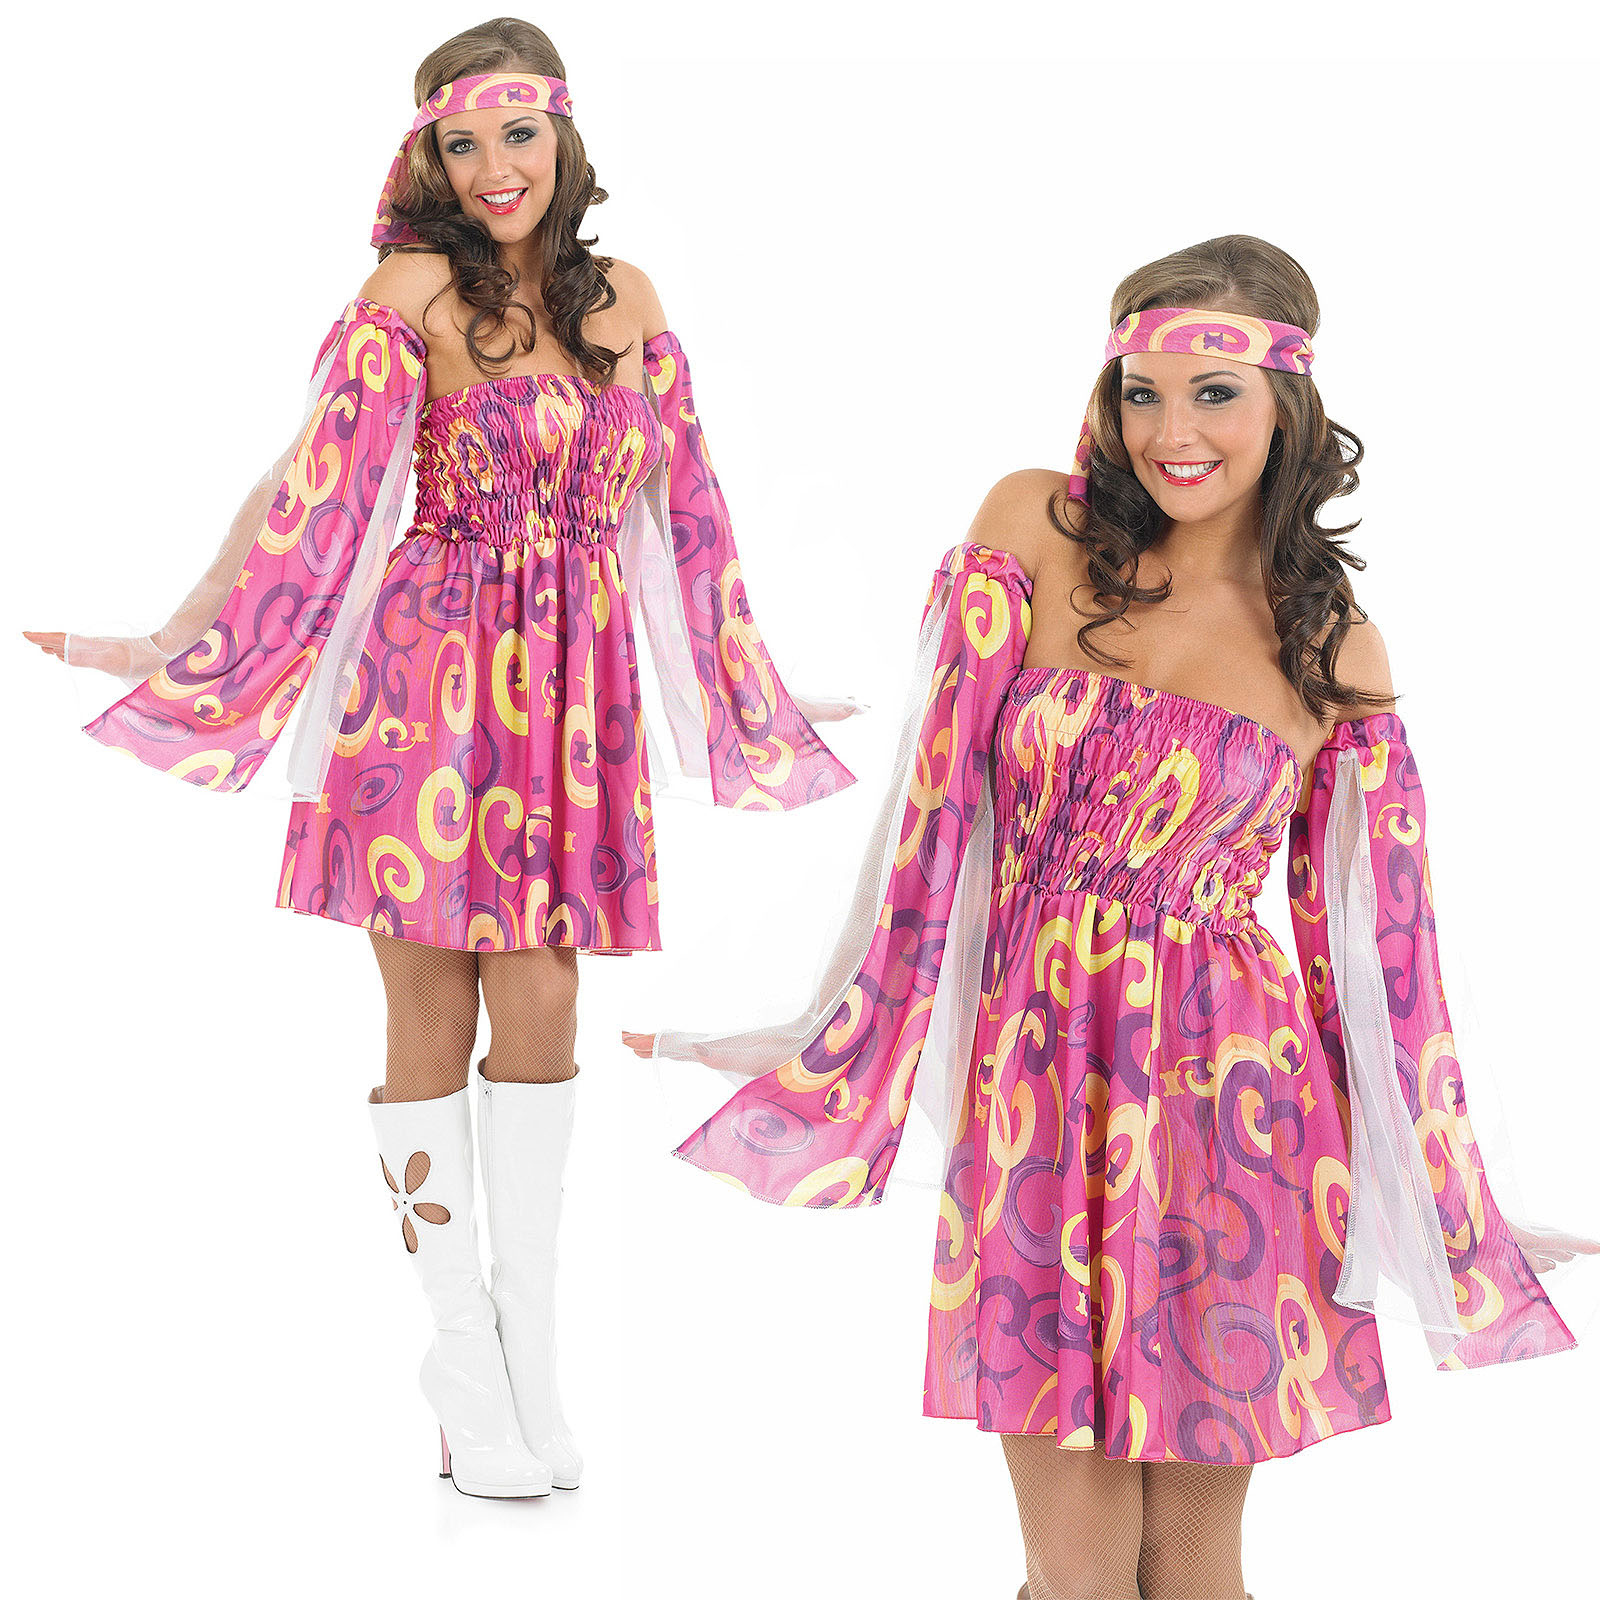 Details About Ladies 1960S Pink Swirl Costume Dress Hippy Hippie Retro 60S Outfit L